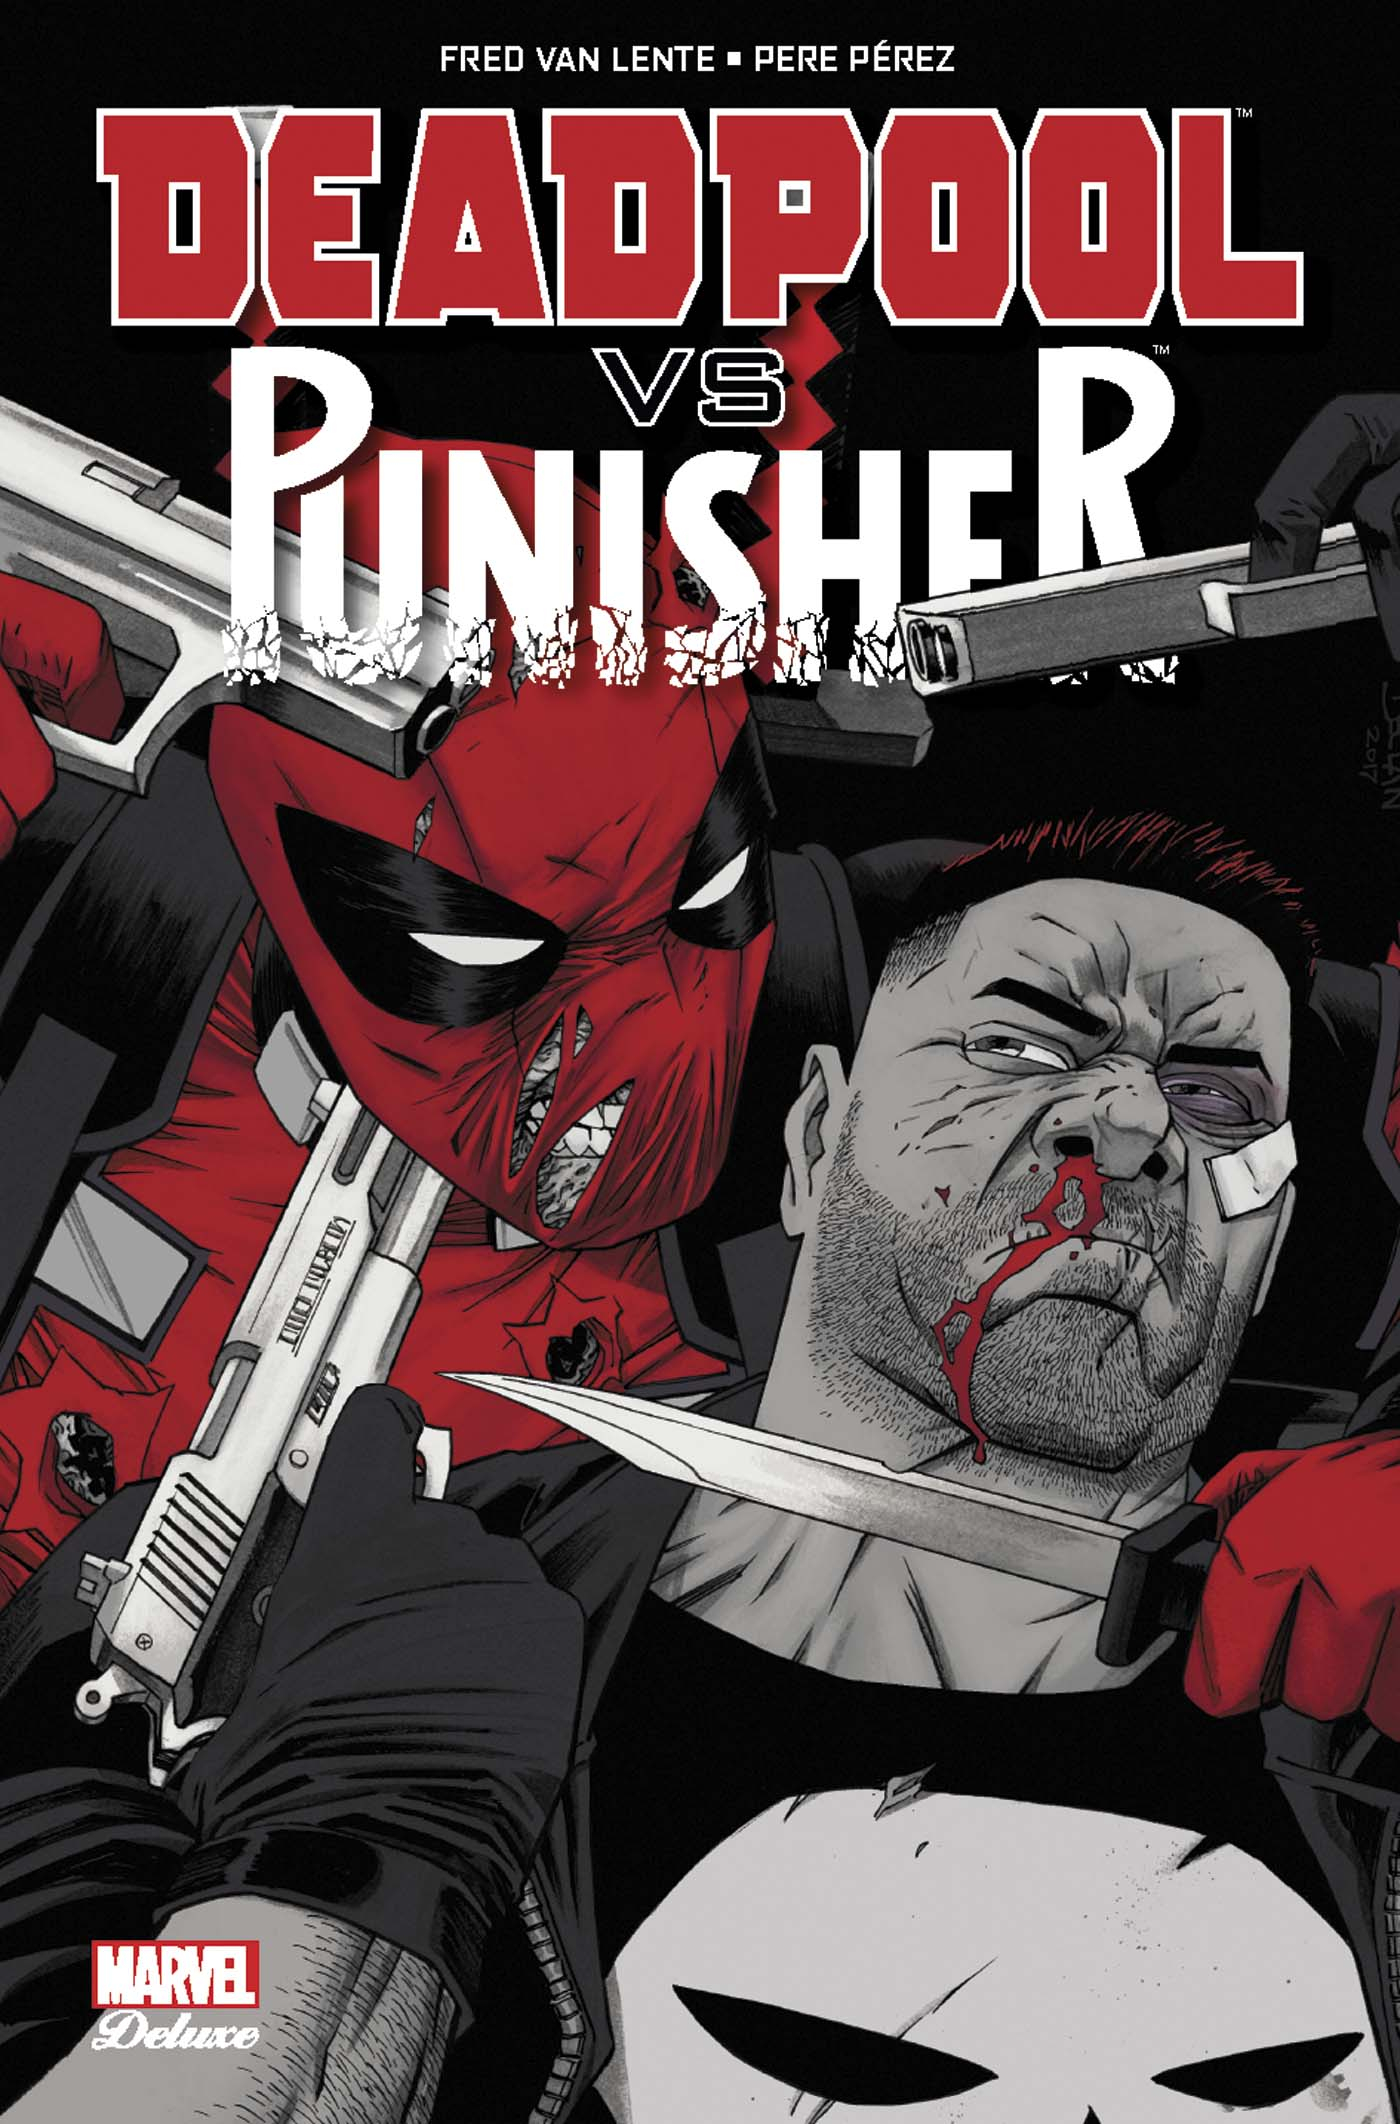 DEADPOOL VS PUNISHER (VF)